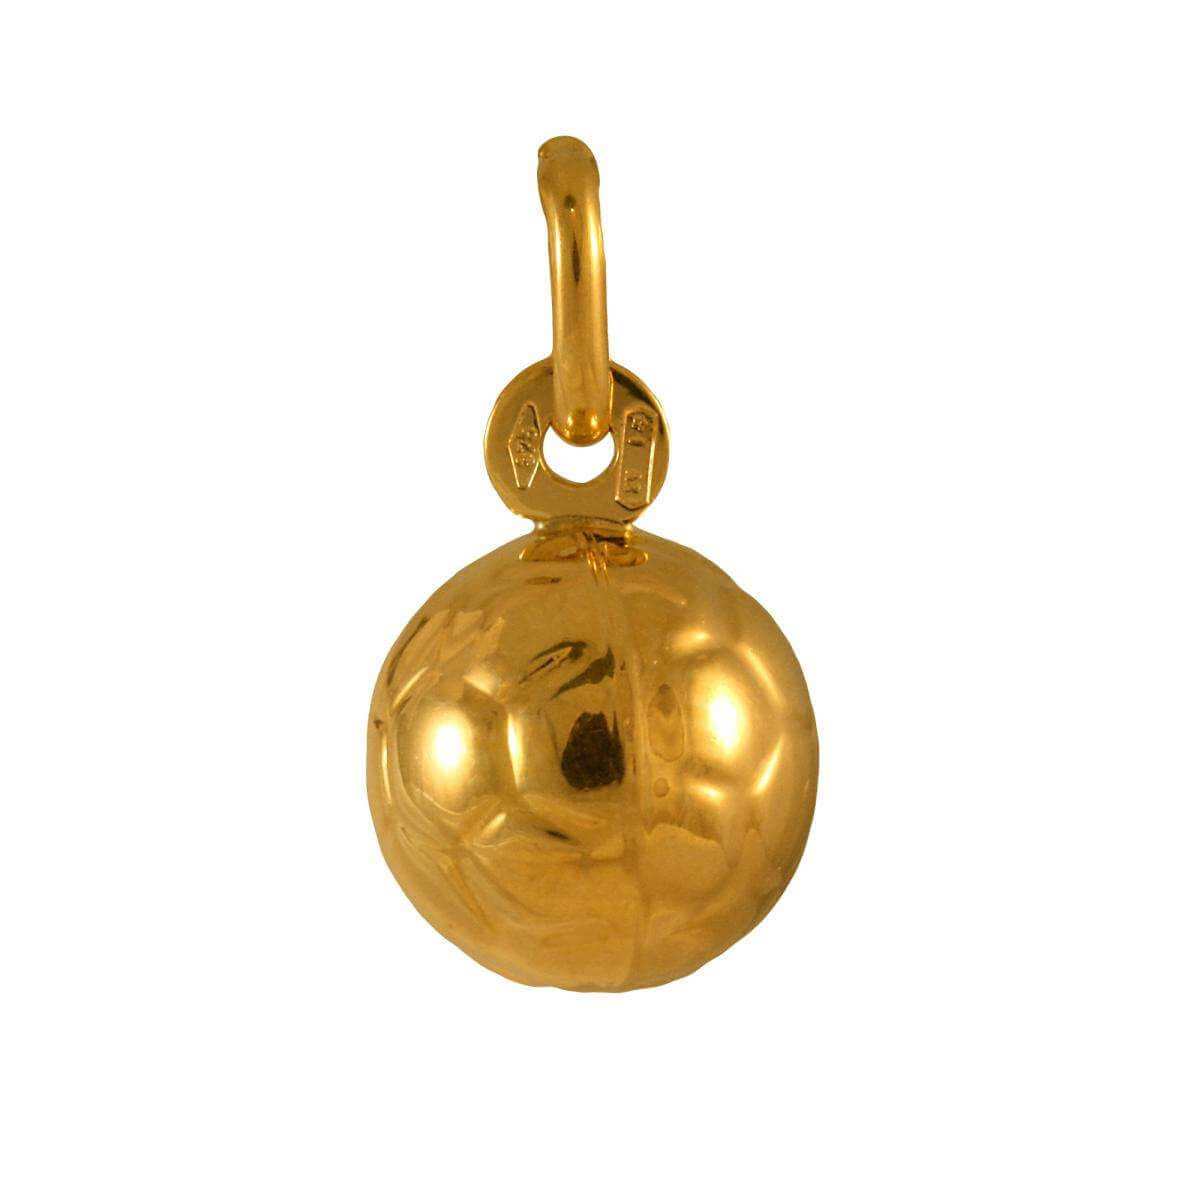 9ct Gold Hollow Football Charm